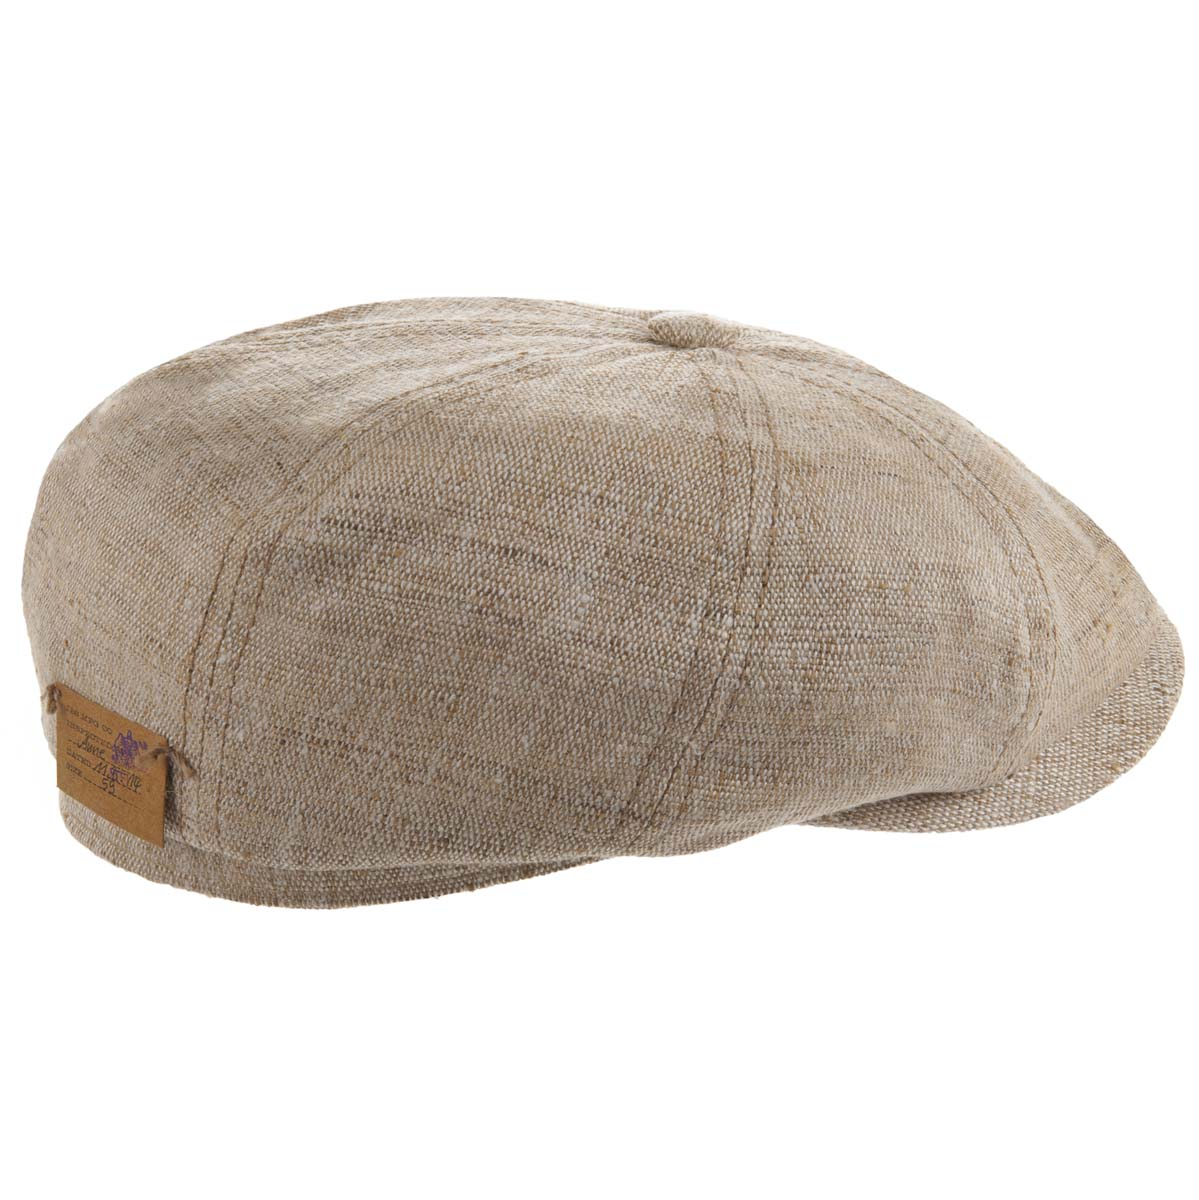 get cheap reasonable price great quality Hatteras flat cap signed Stetson